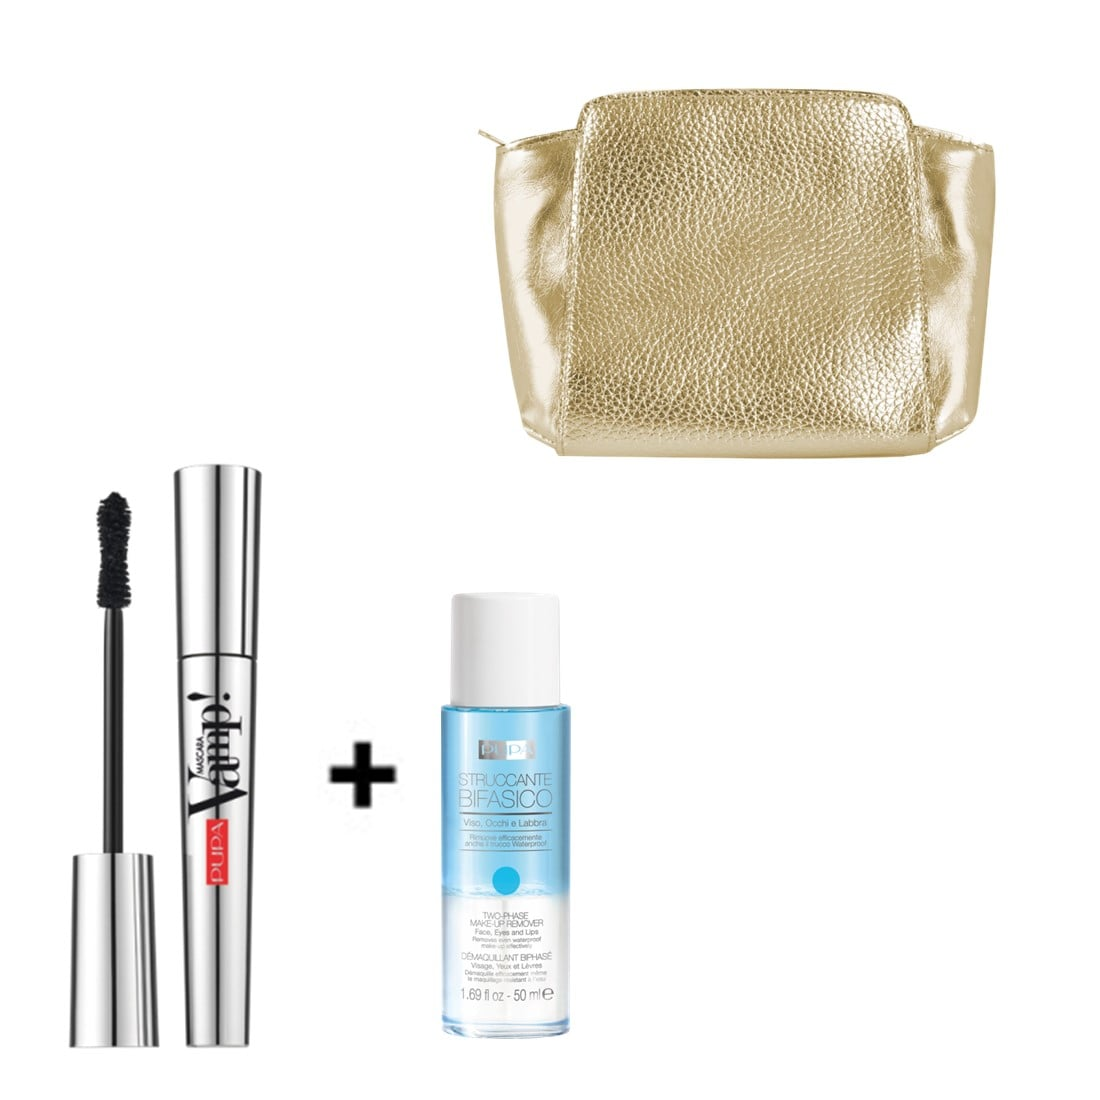 Set Vamp Mascara & Two-Phase Make-Up Remover